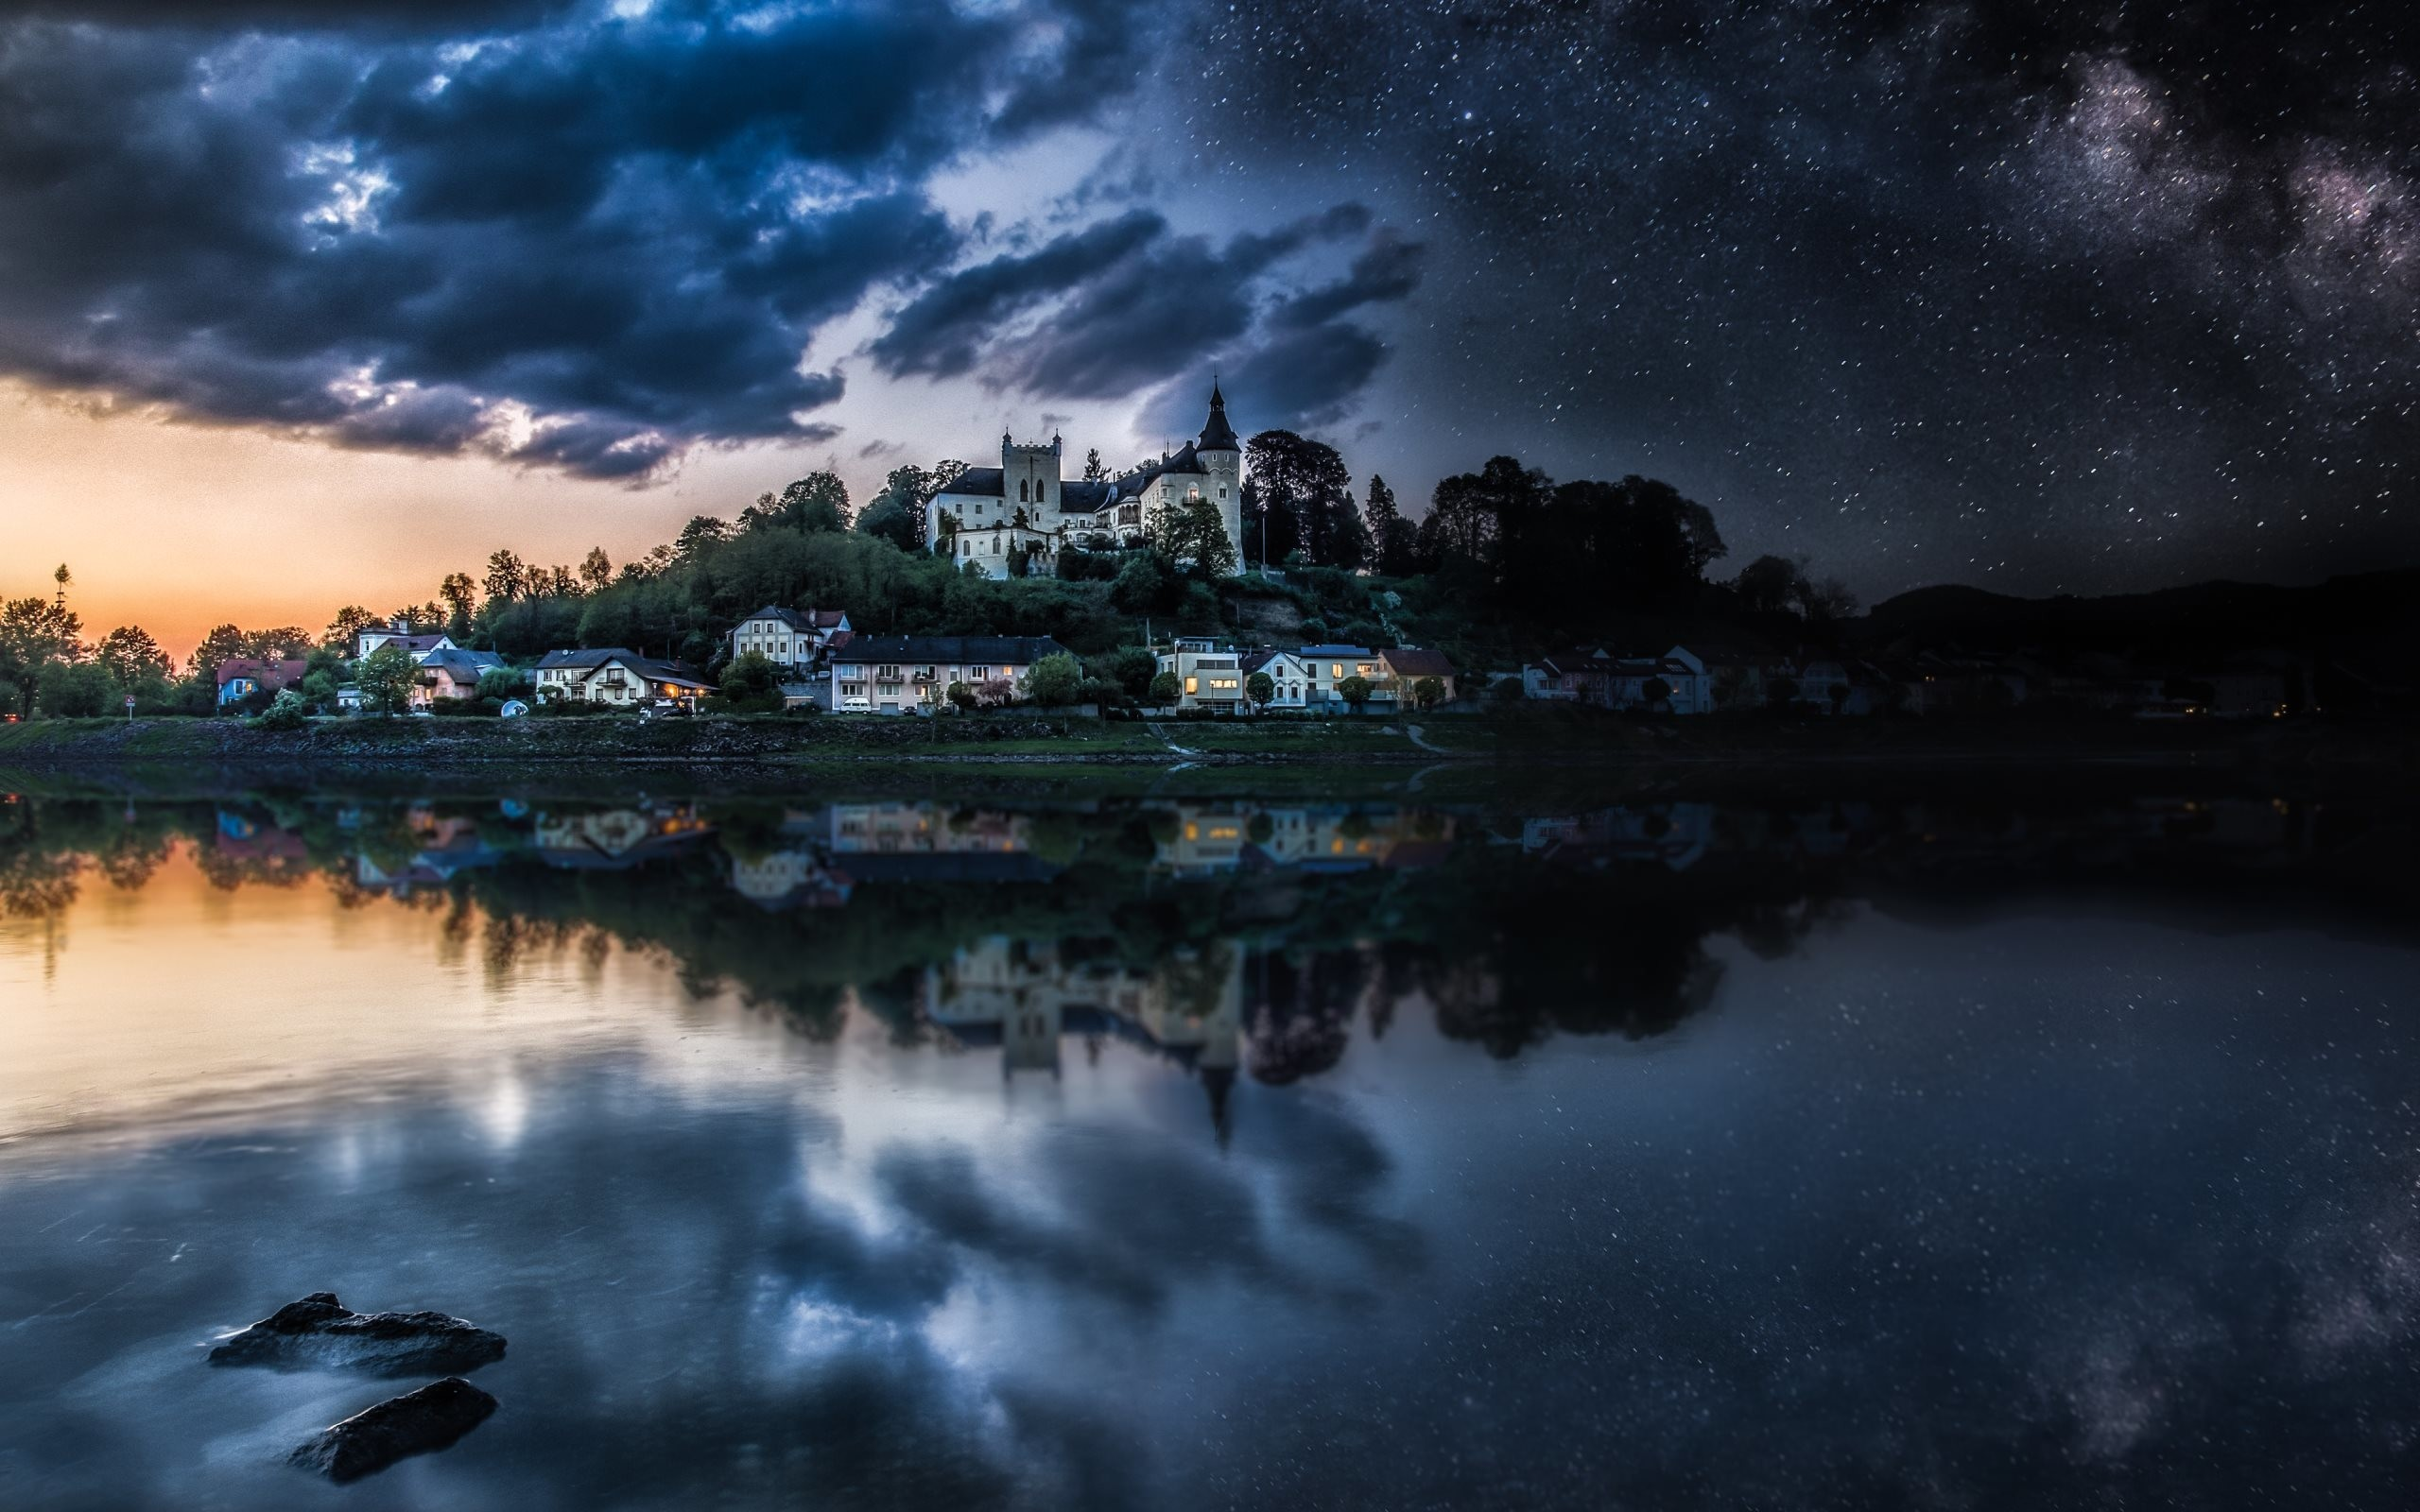 4K HD Wallpaper: Castle and Lucky Stars on the Night Sky